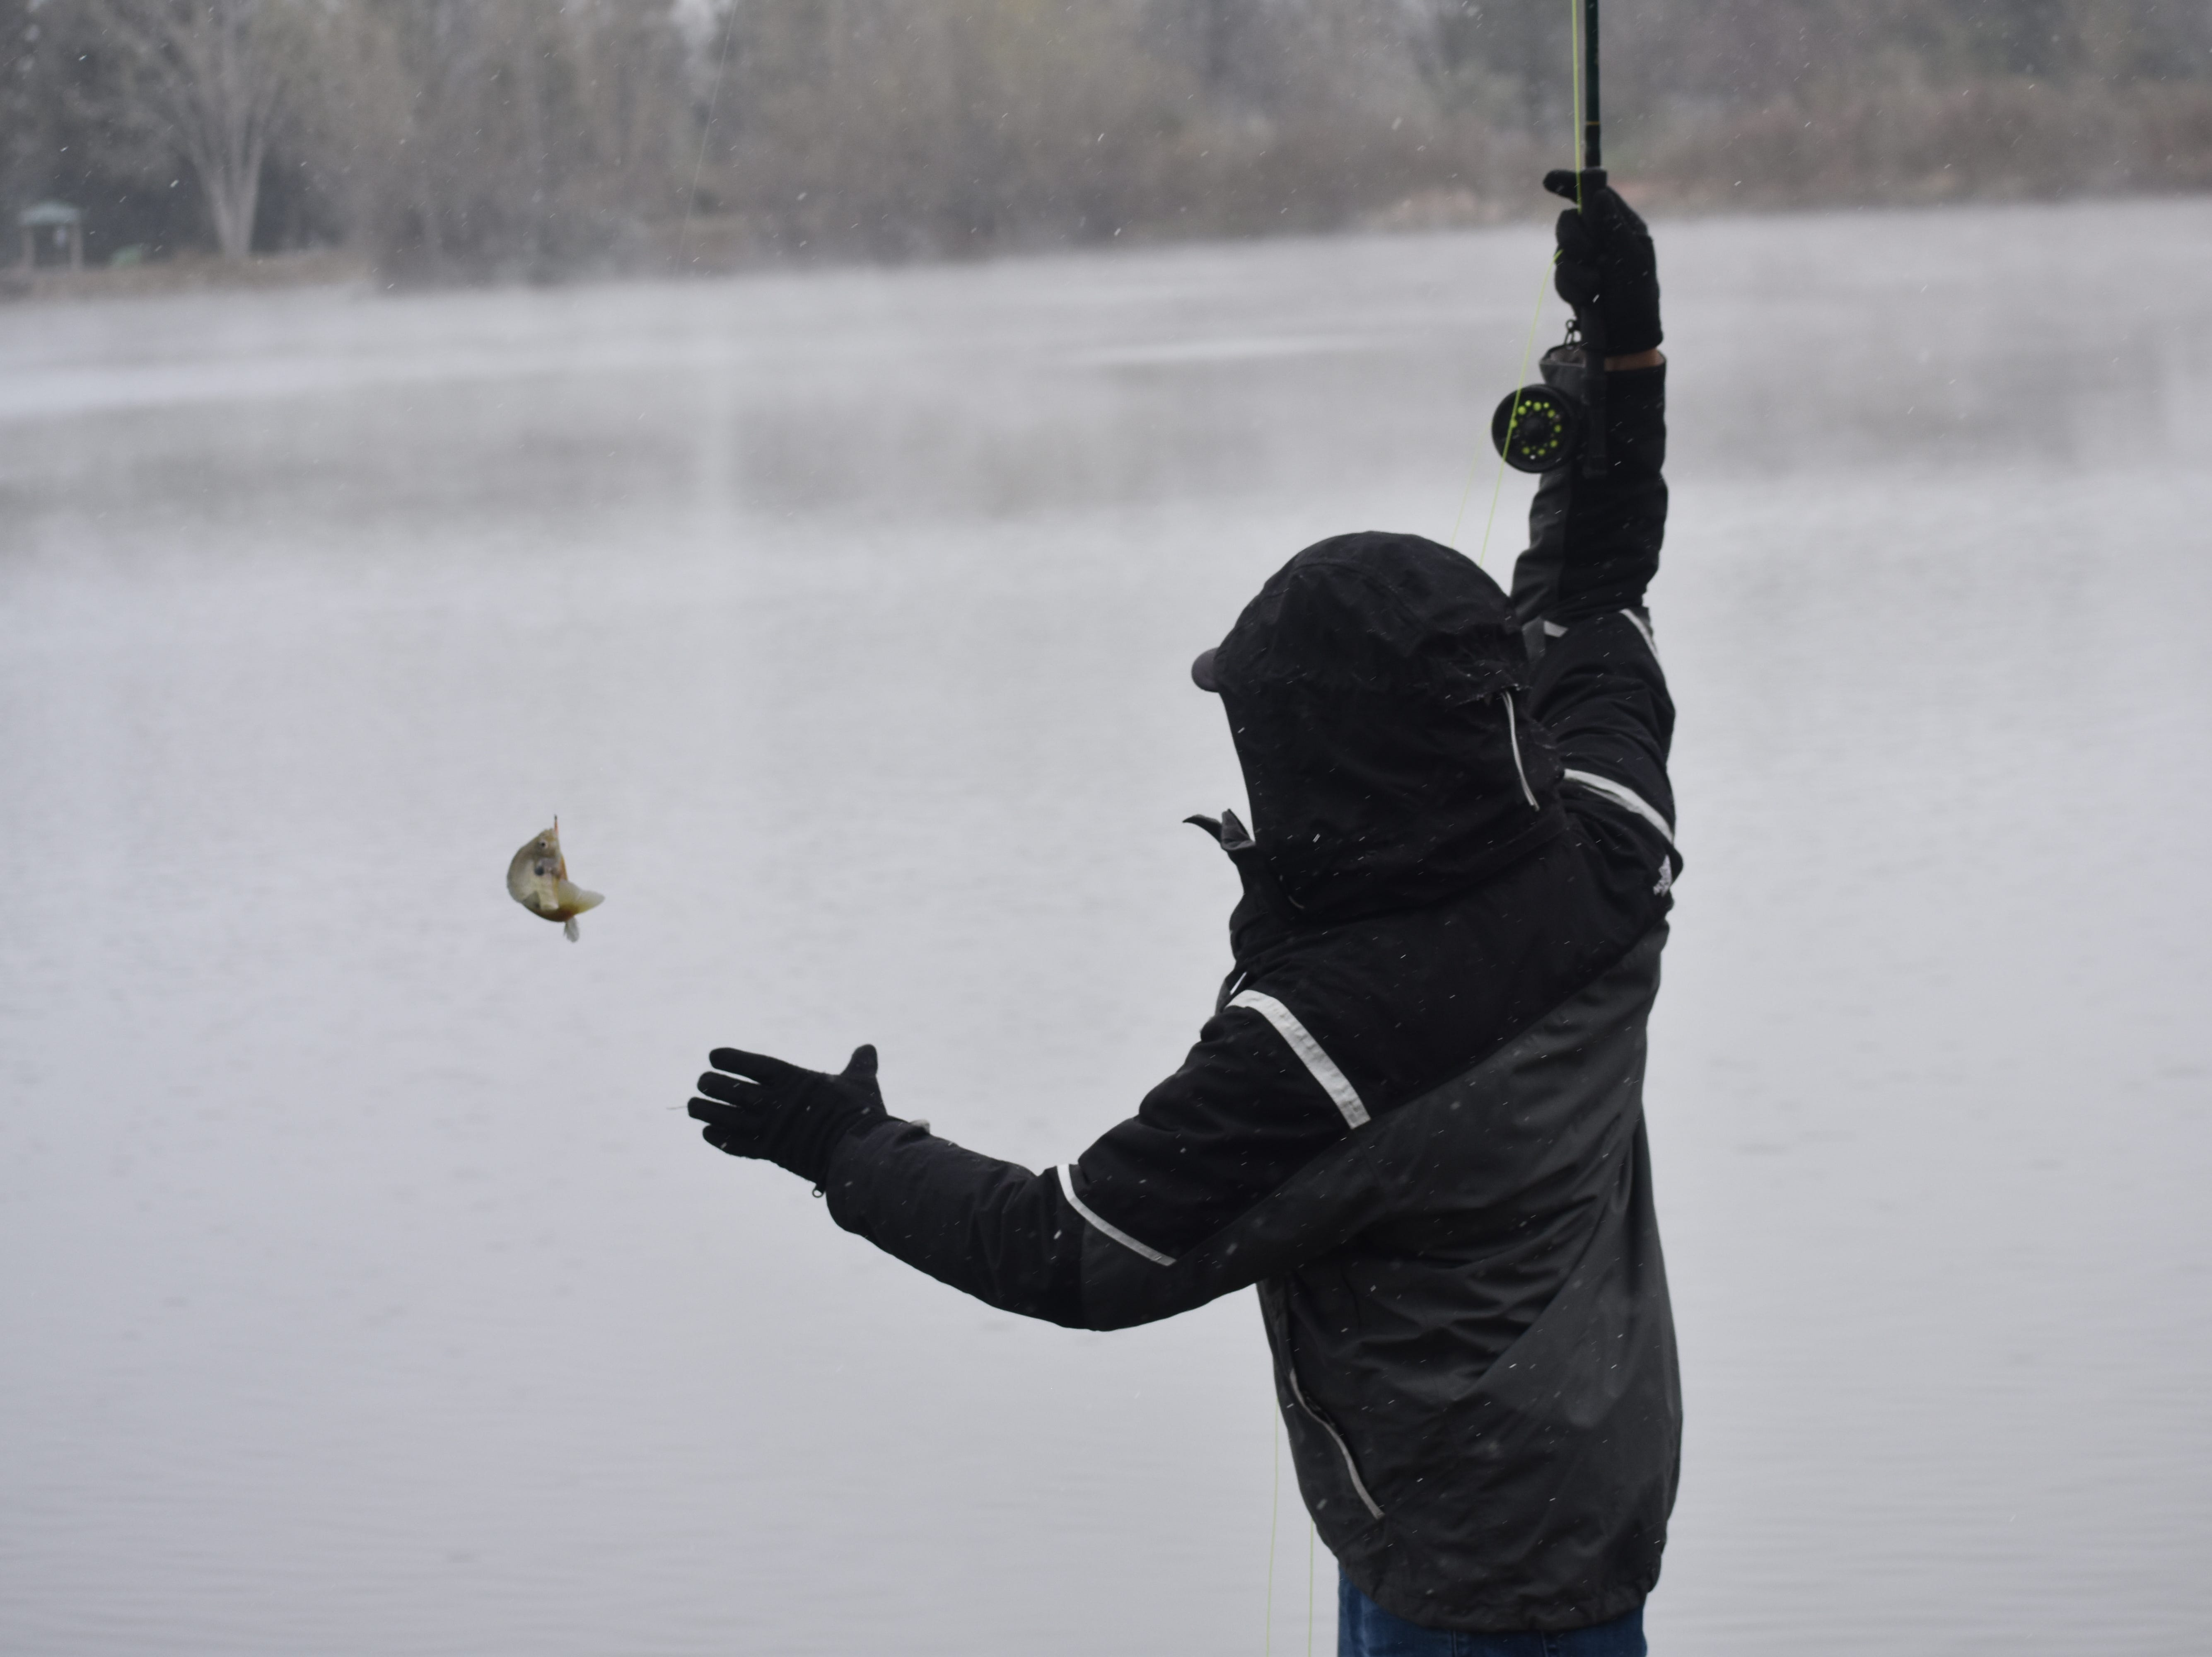 C.J. Duran of Johnstown lands a small bluegill with his fly rod at City Park Lake during the start of Monday's snowstorm.